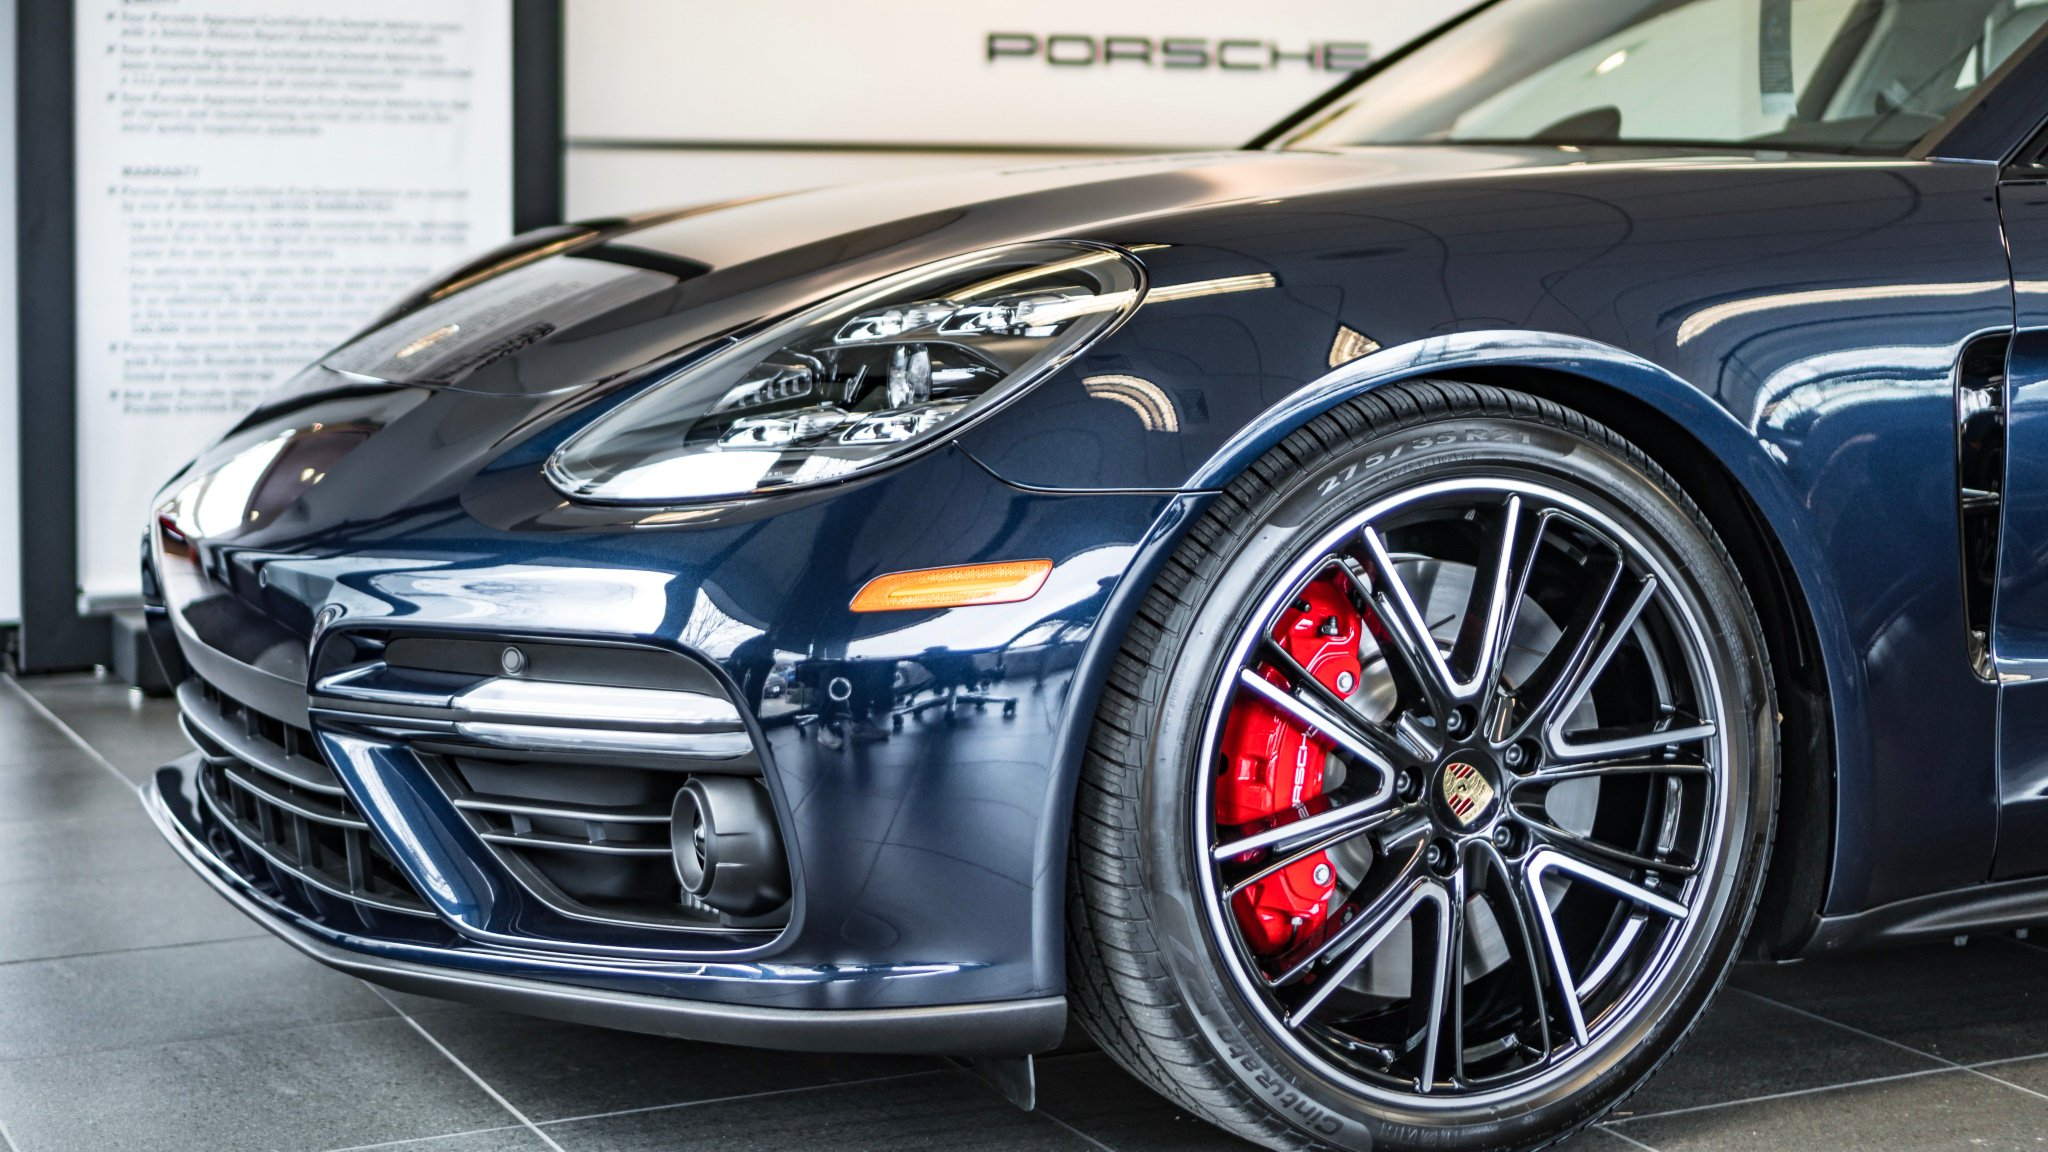 ed carroll porsche on twitter this night blue panamera turbo may not fit under a christmas tree but it would still make a great gift fortcollins edcarrollporsche panamera porsche panameraturbo https t co unseo8bqyc ed carroll porsche on twitter this